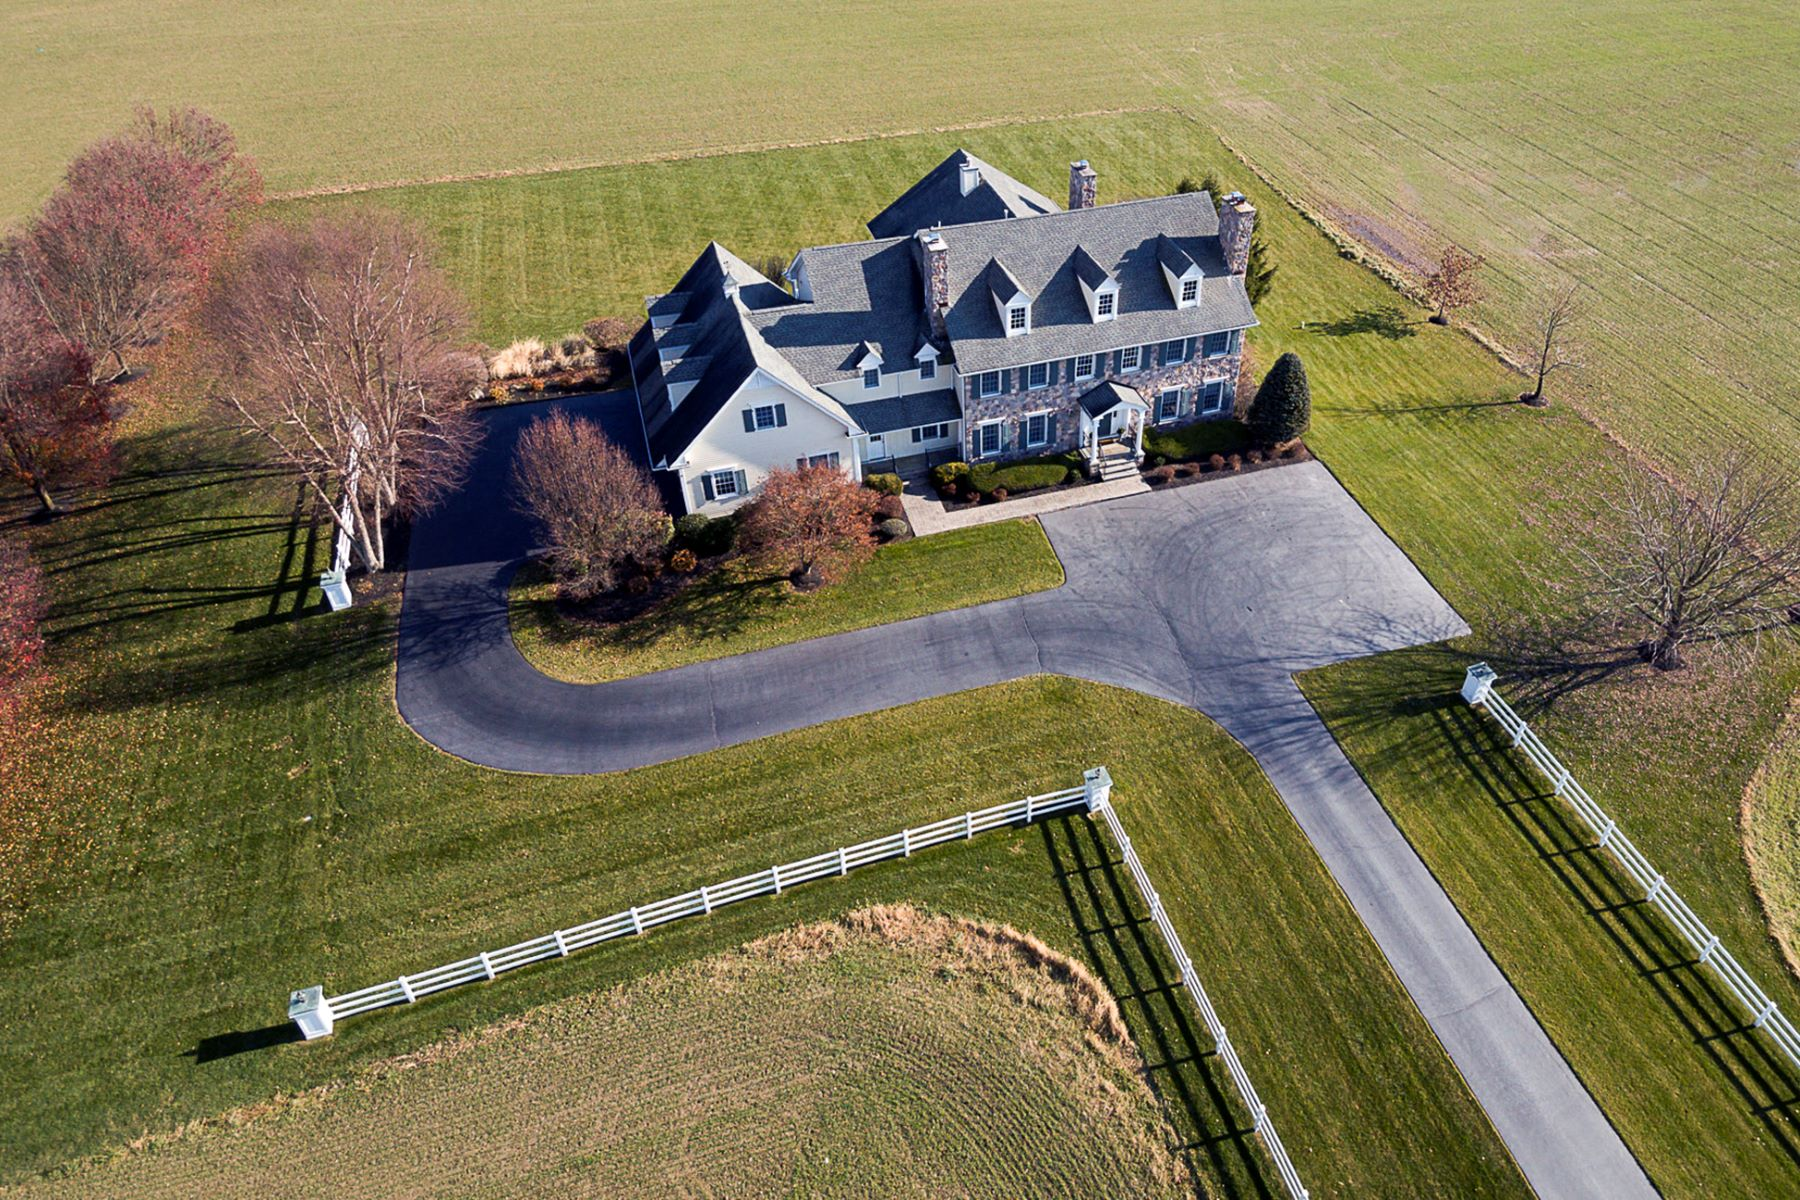 Terreno por un Venta en 6+ Acres - Enchanting Custom Home 81 Petty Road, Cranbury, Nueva Jersey 08512 Estados UnidosEn/Alrededor: Cranbury Township